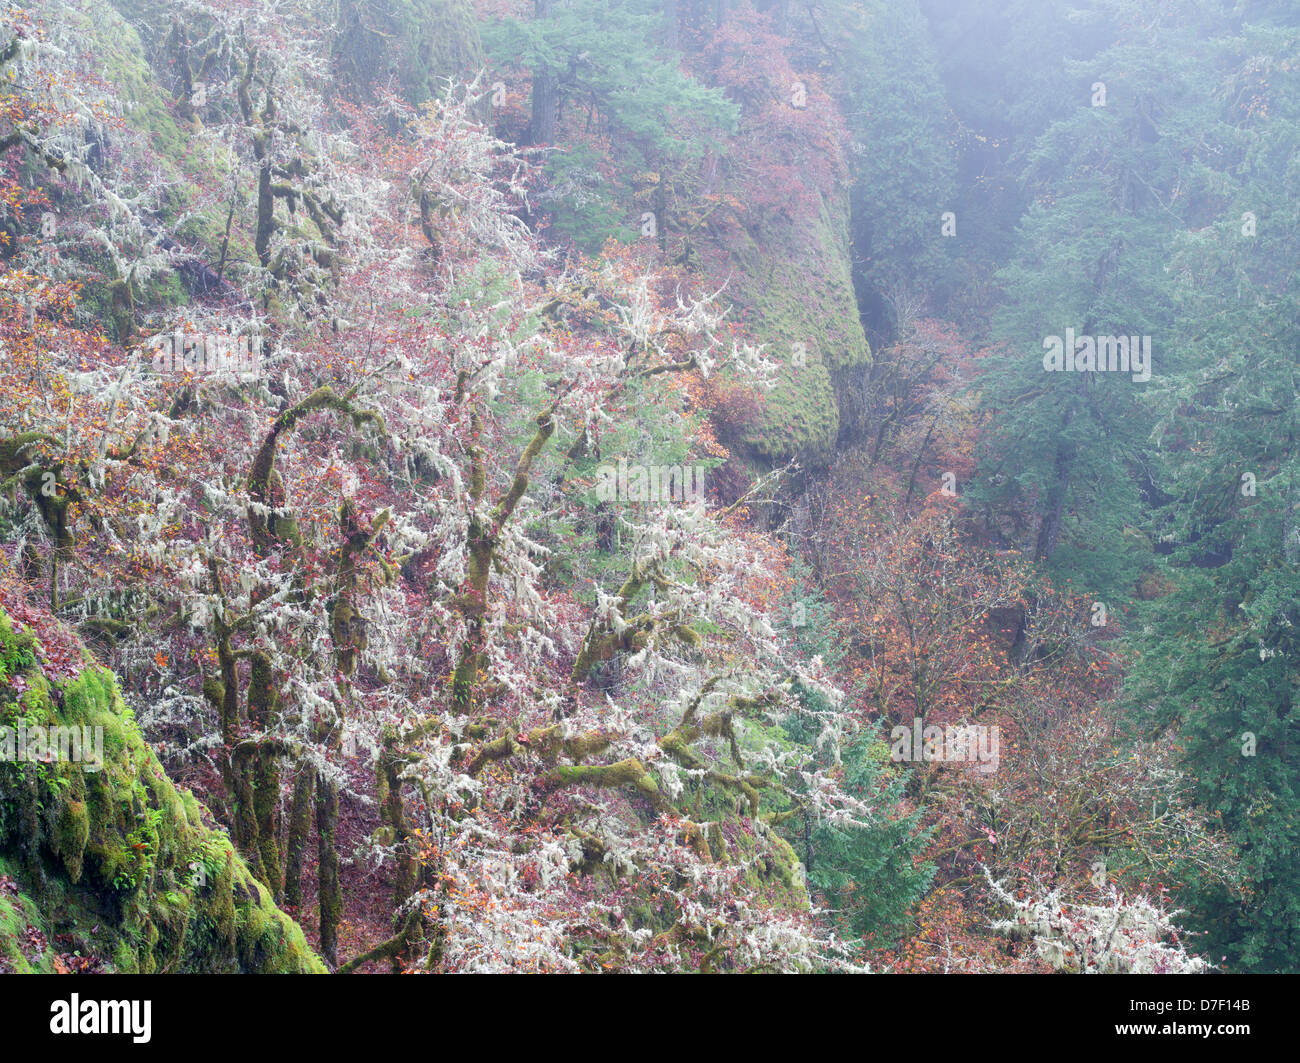 Oak trees with moss and fall color and gog. Eagle Creek Trail. Columbia River Gorge National Scenic Area, Oregon - Stock Image